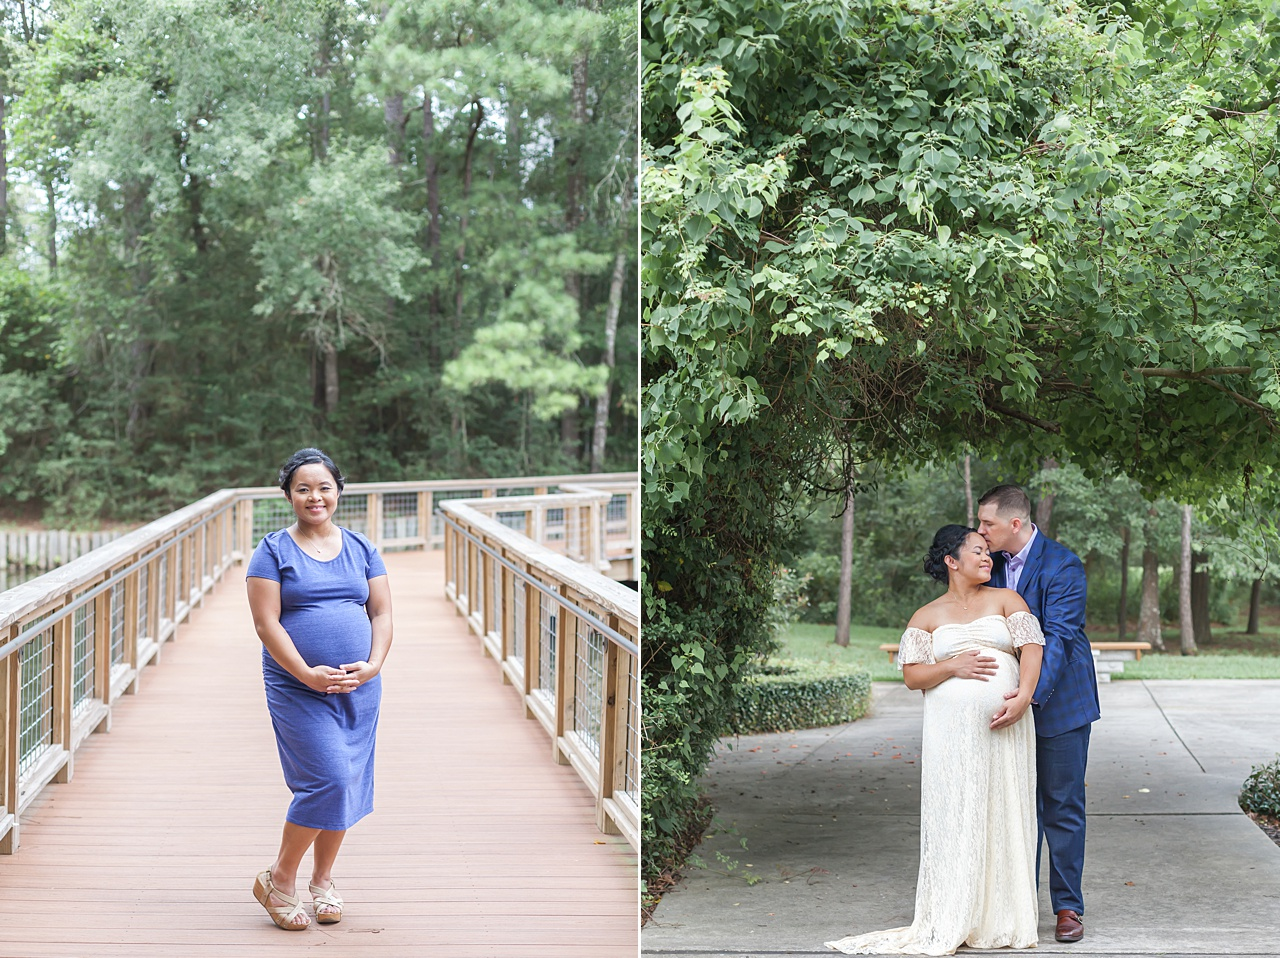 romantic maternity photography photos in the woodlands texas by kristal bean